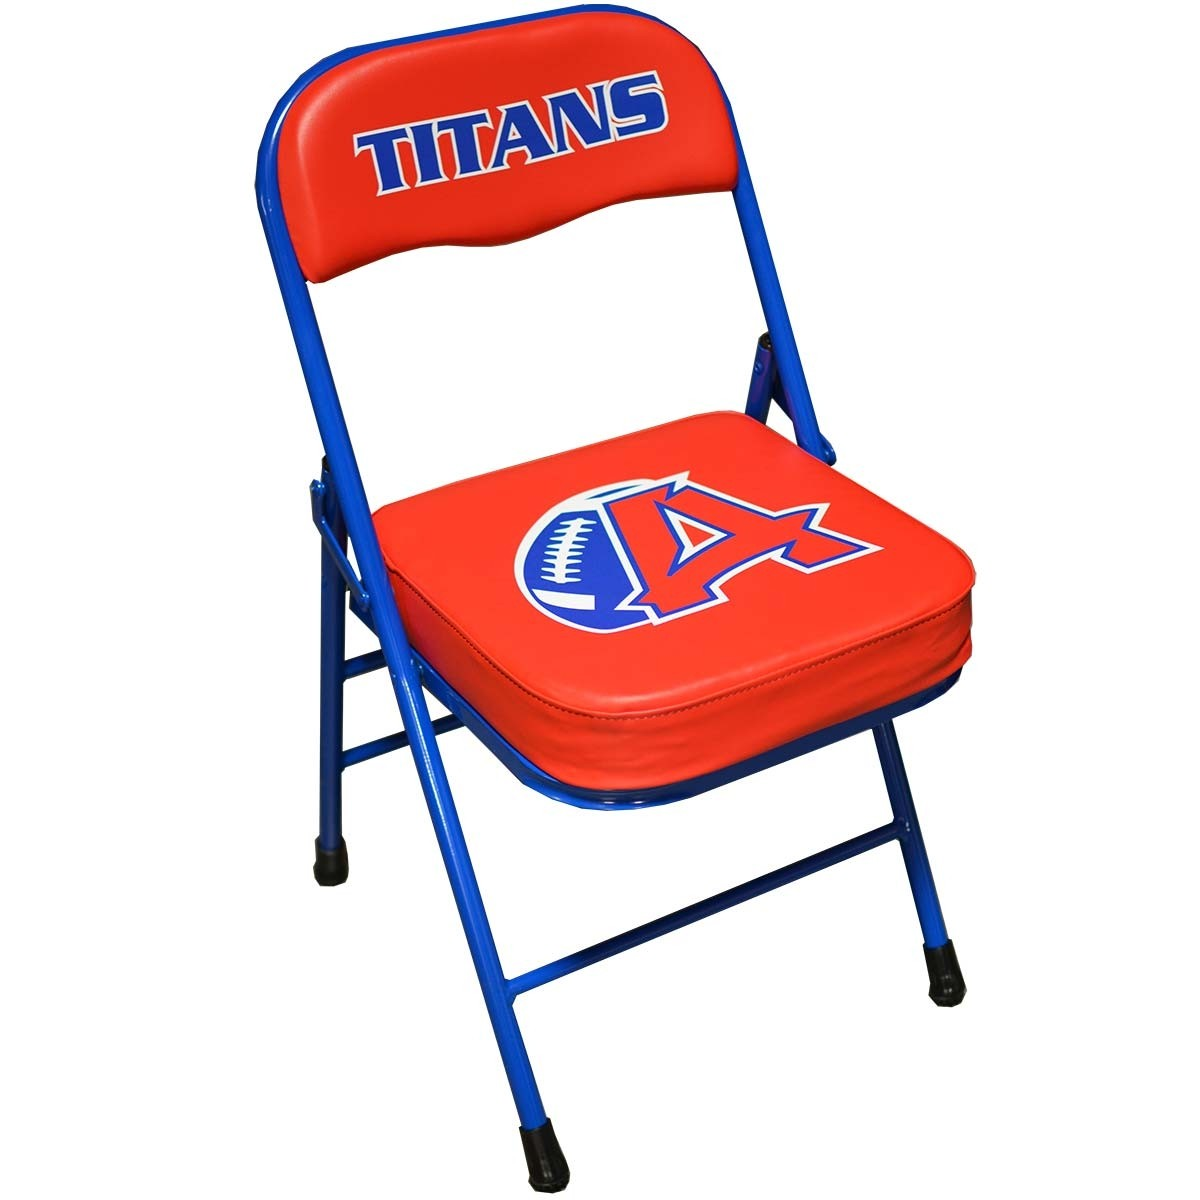 Basketball Chairs Fisher Next Level Folding Sideline Basketball Chair W 2 Color Artwork